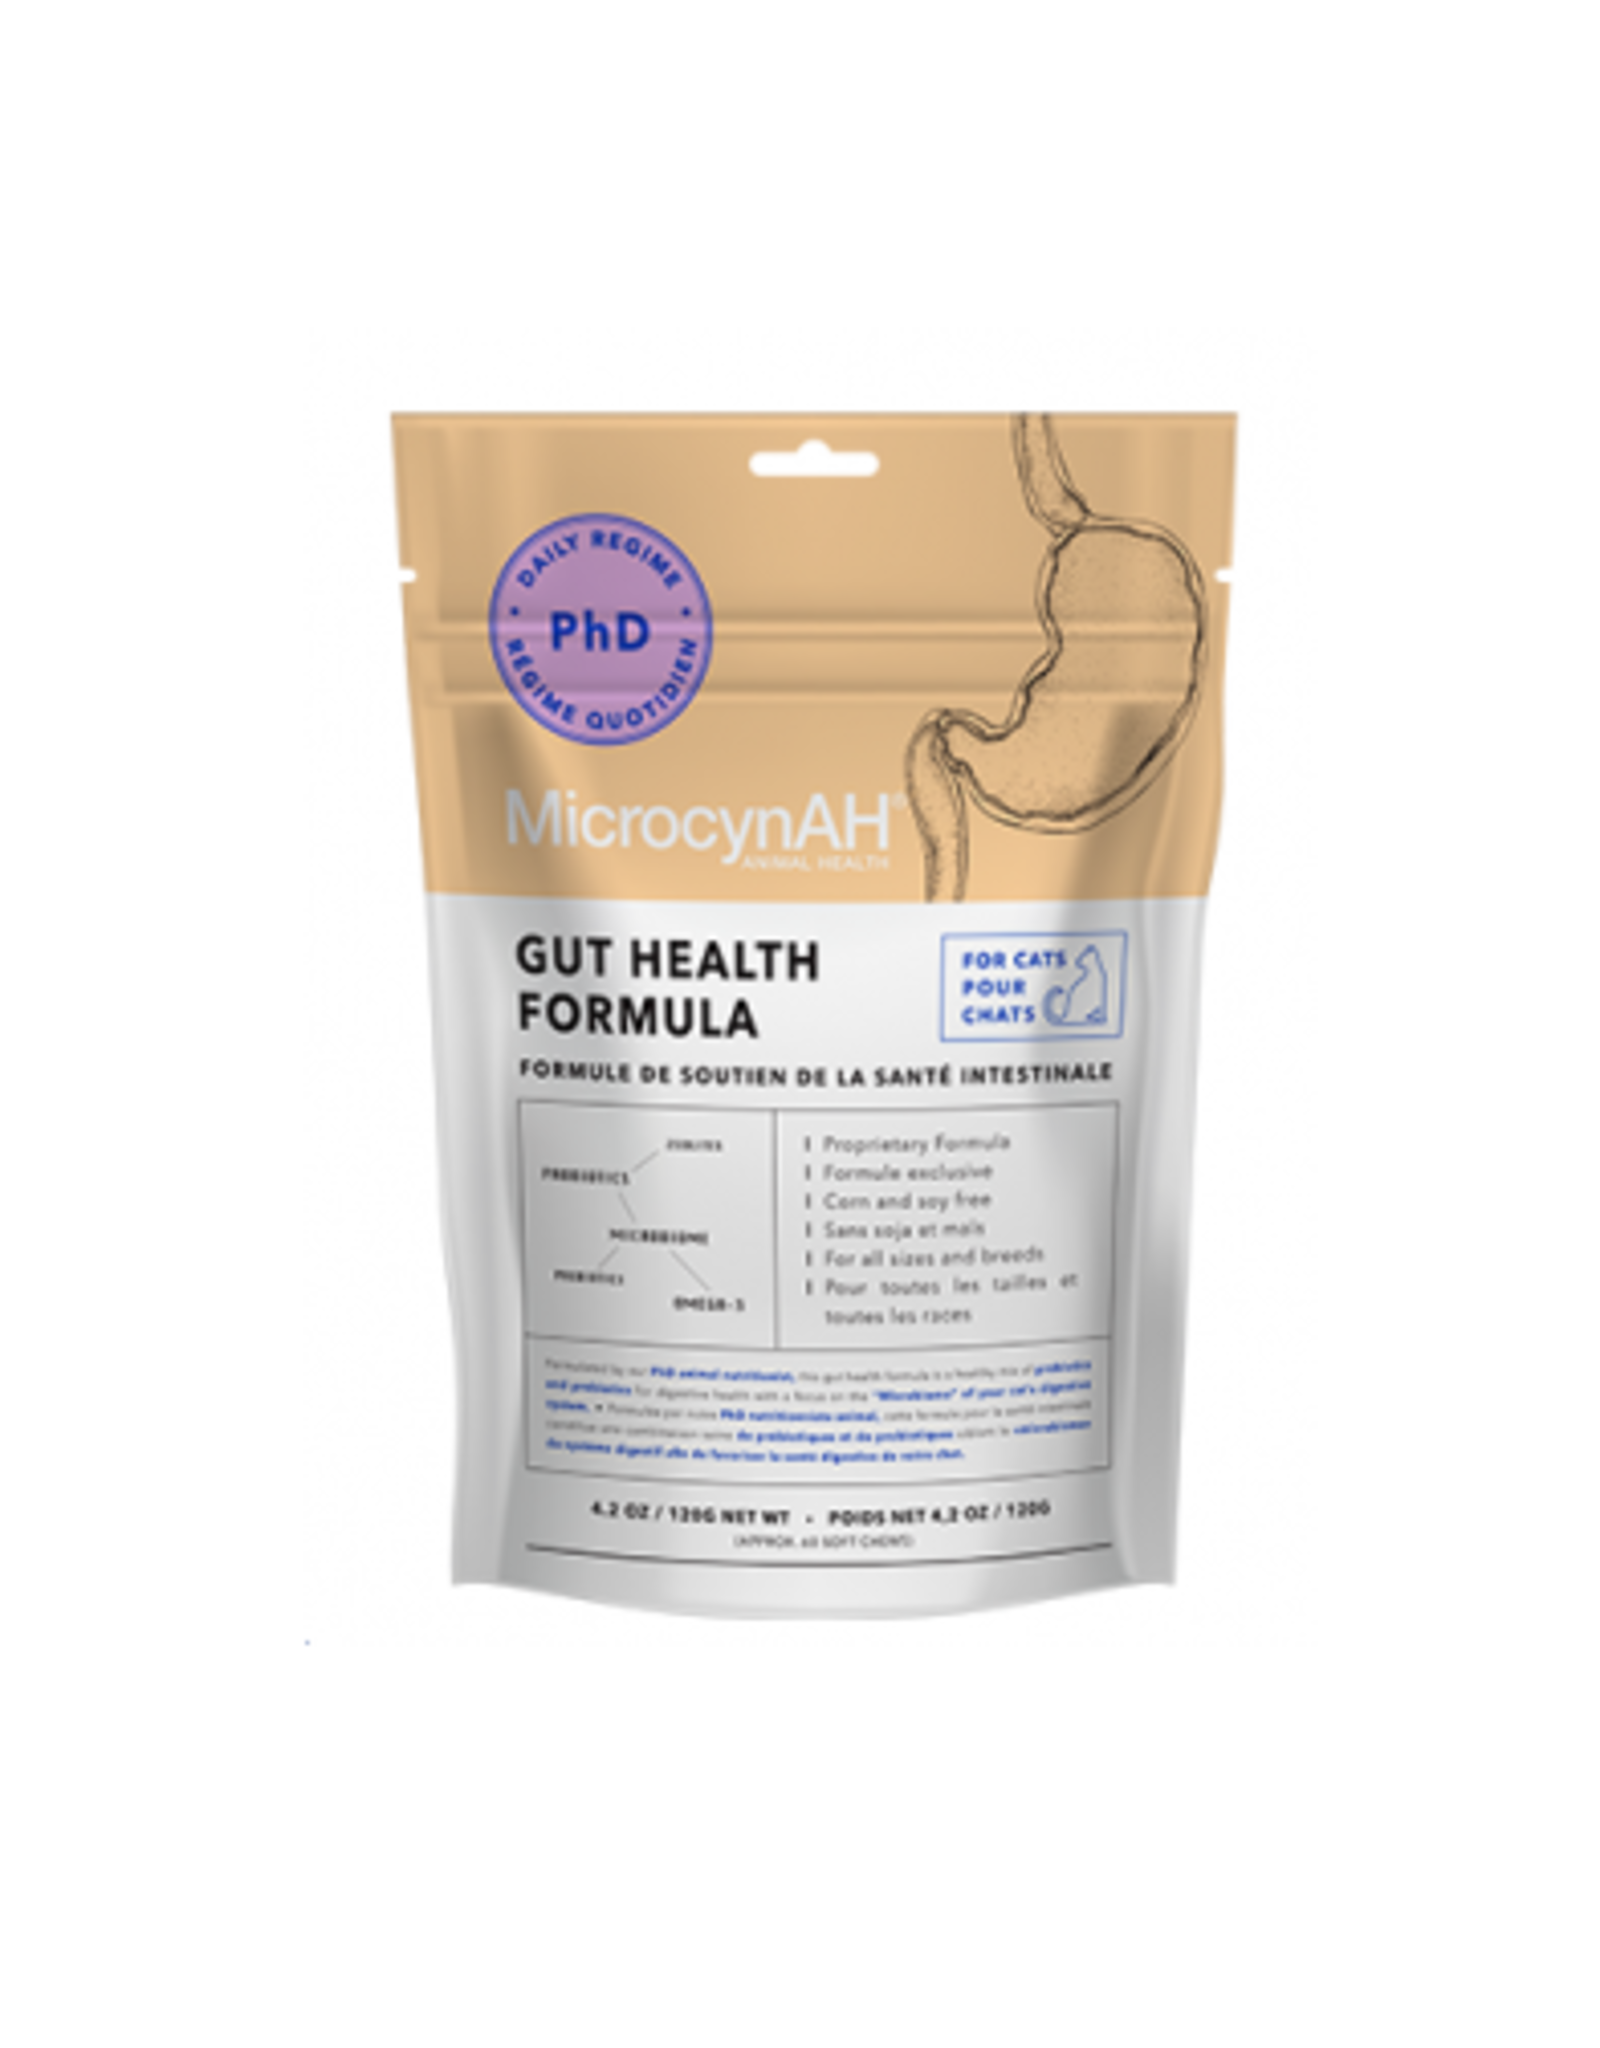 MicrocynAH MicrocynAH Gut Health Formula for Cats 4.2 oz